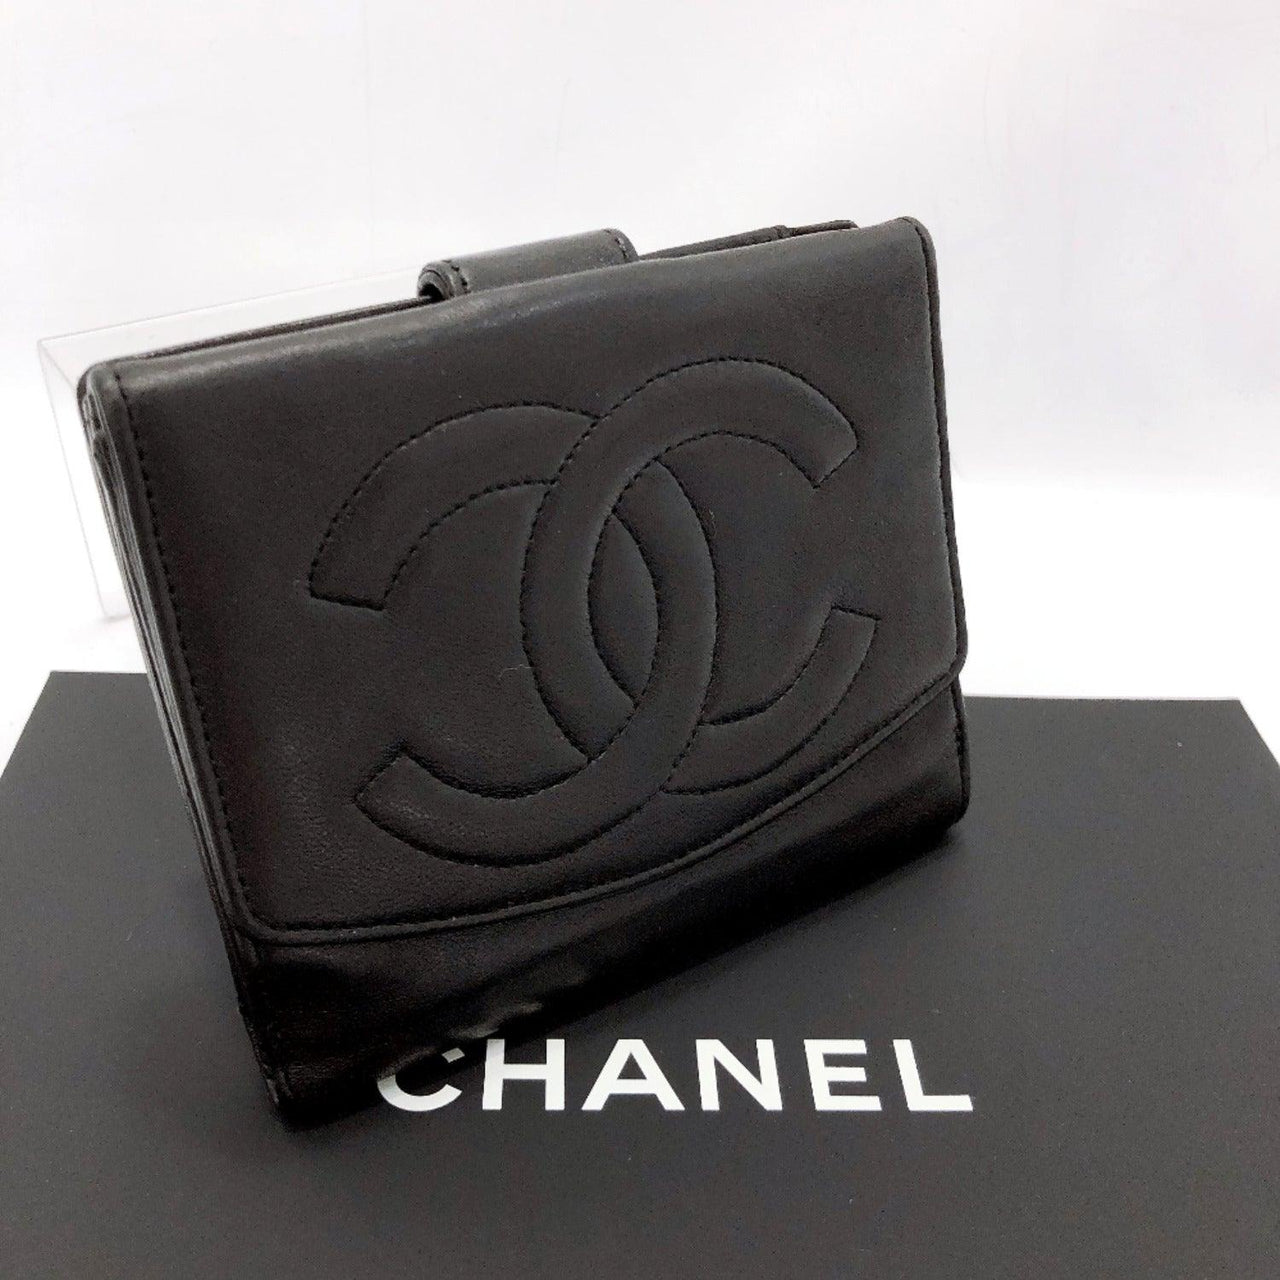 CHANEL wallet COCO Mark leather black Women Used